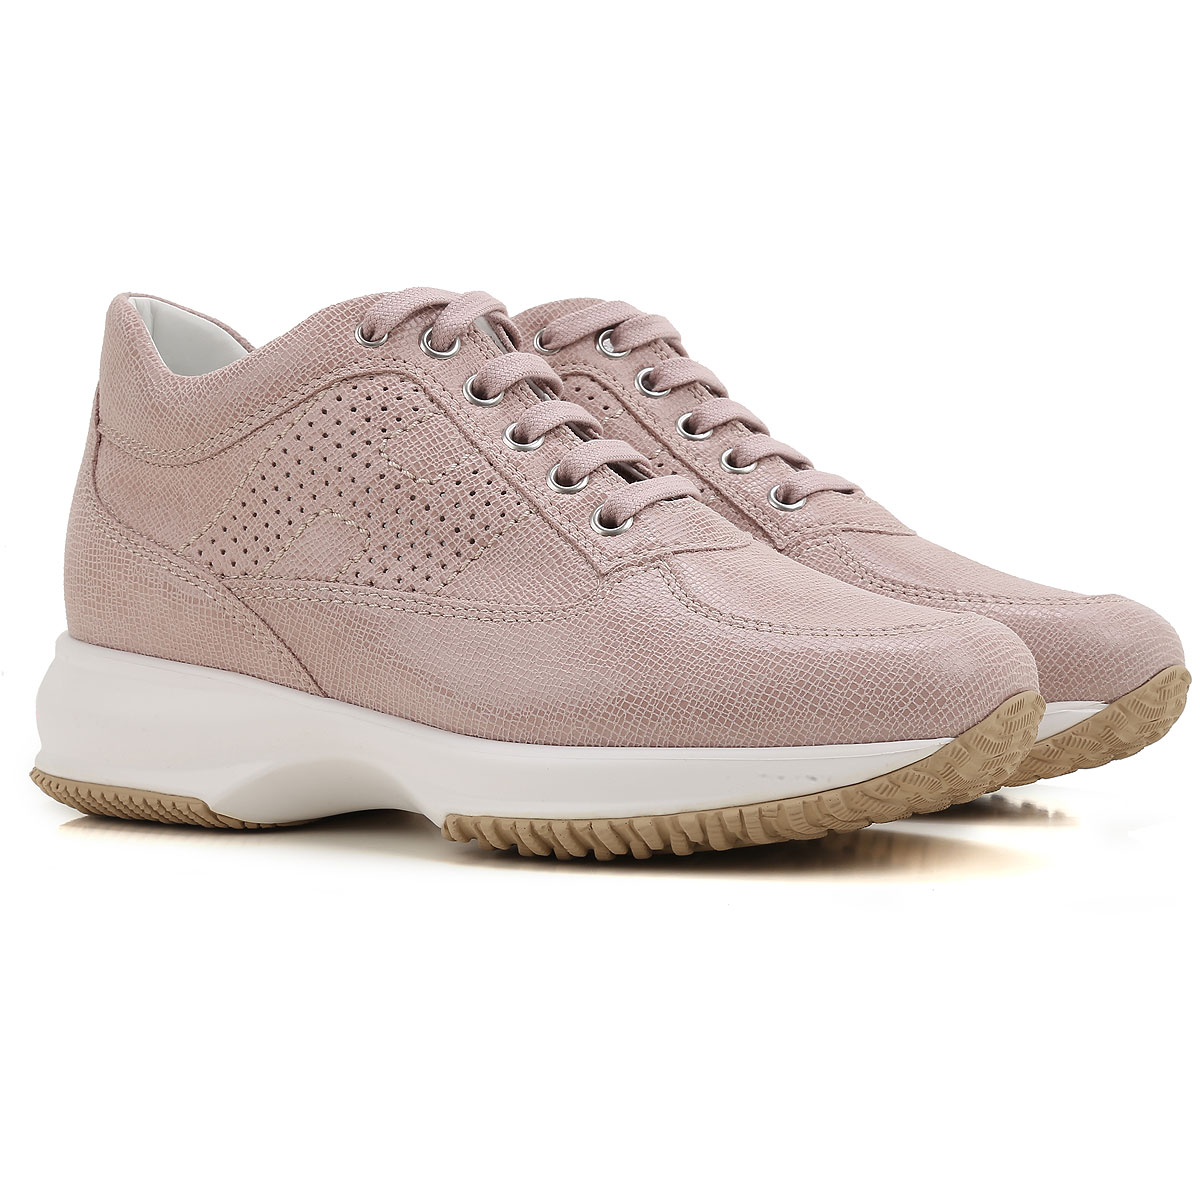 Hogan Sneakers for Women, Powder Pink, Leather, 2017, 10 6.5 8.5 9